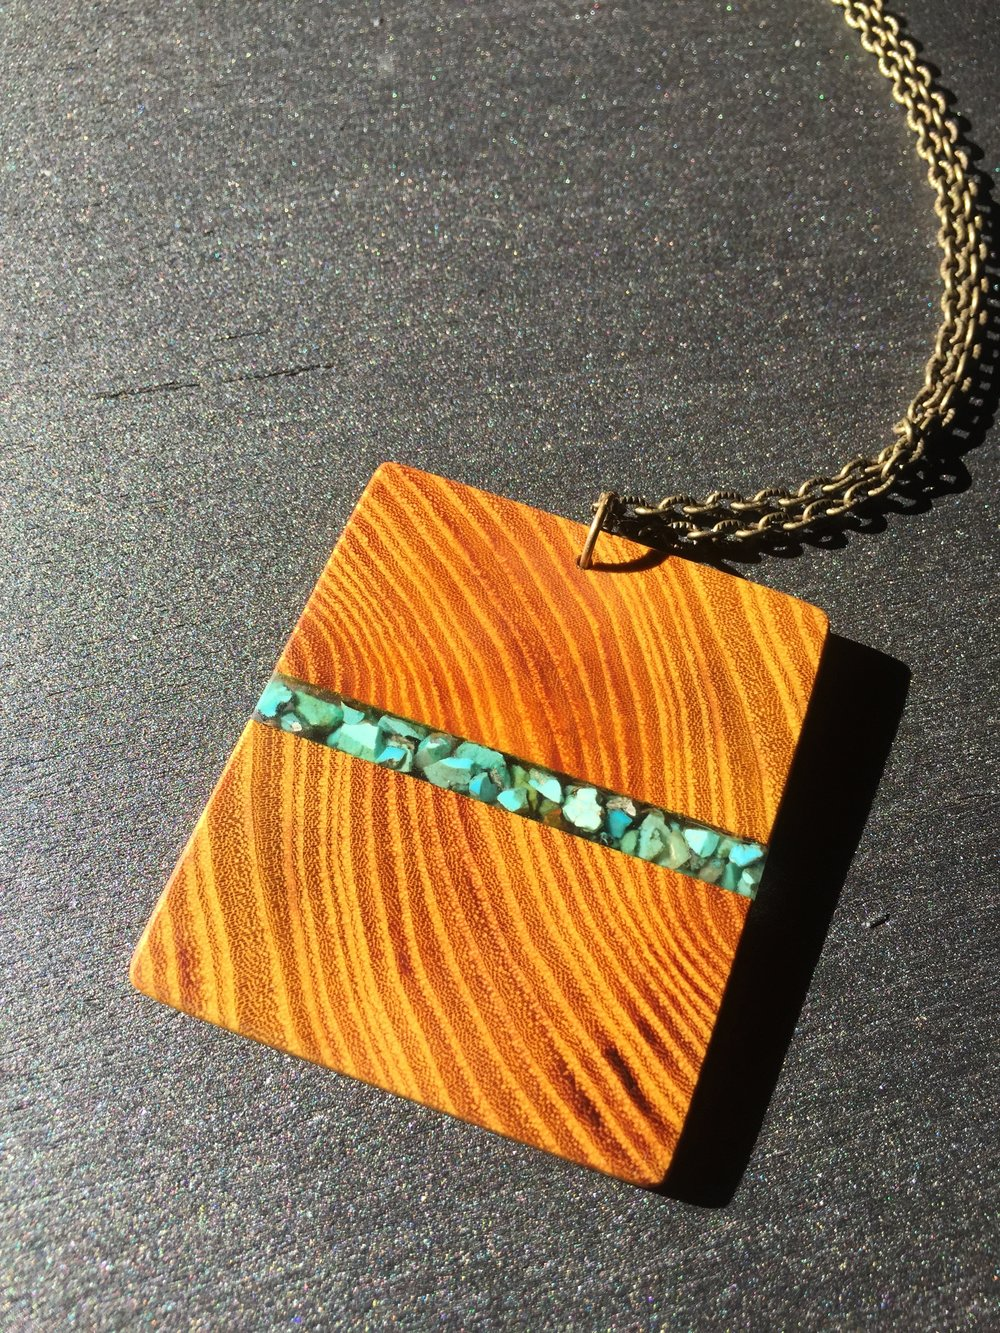 OSAGE ORANGE W/ CERRILLOS TURQUOISE